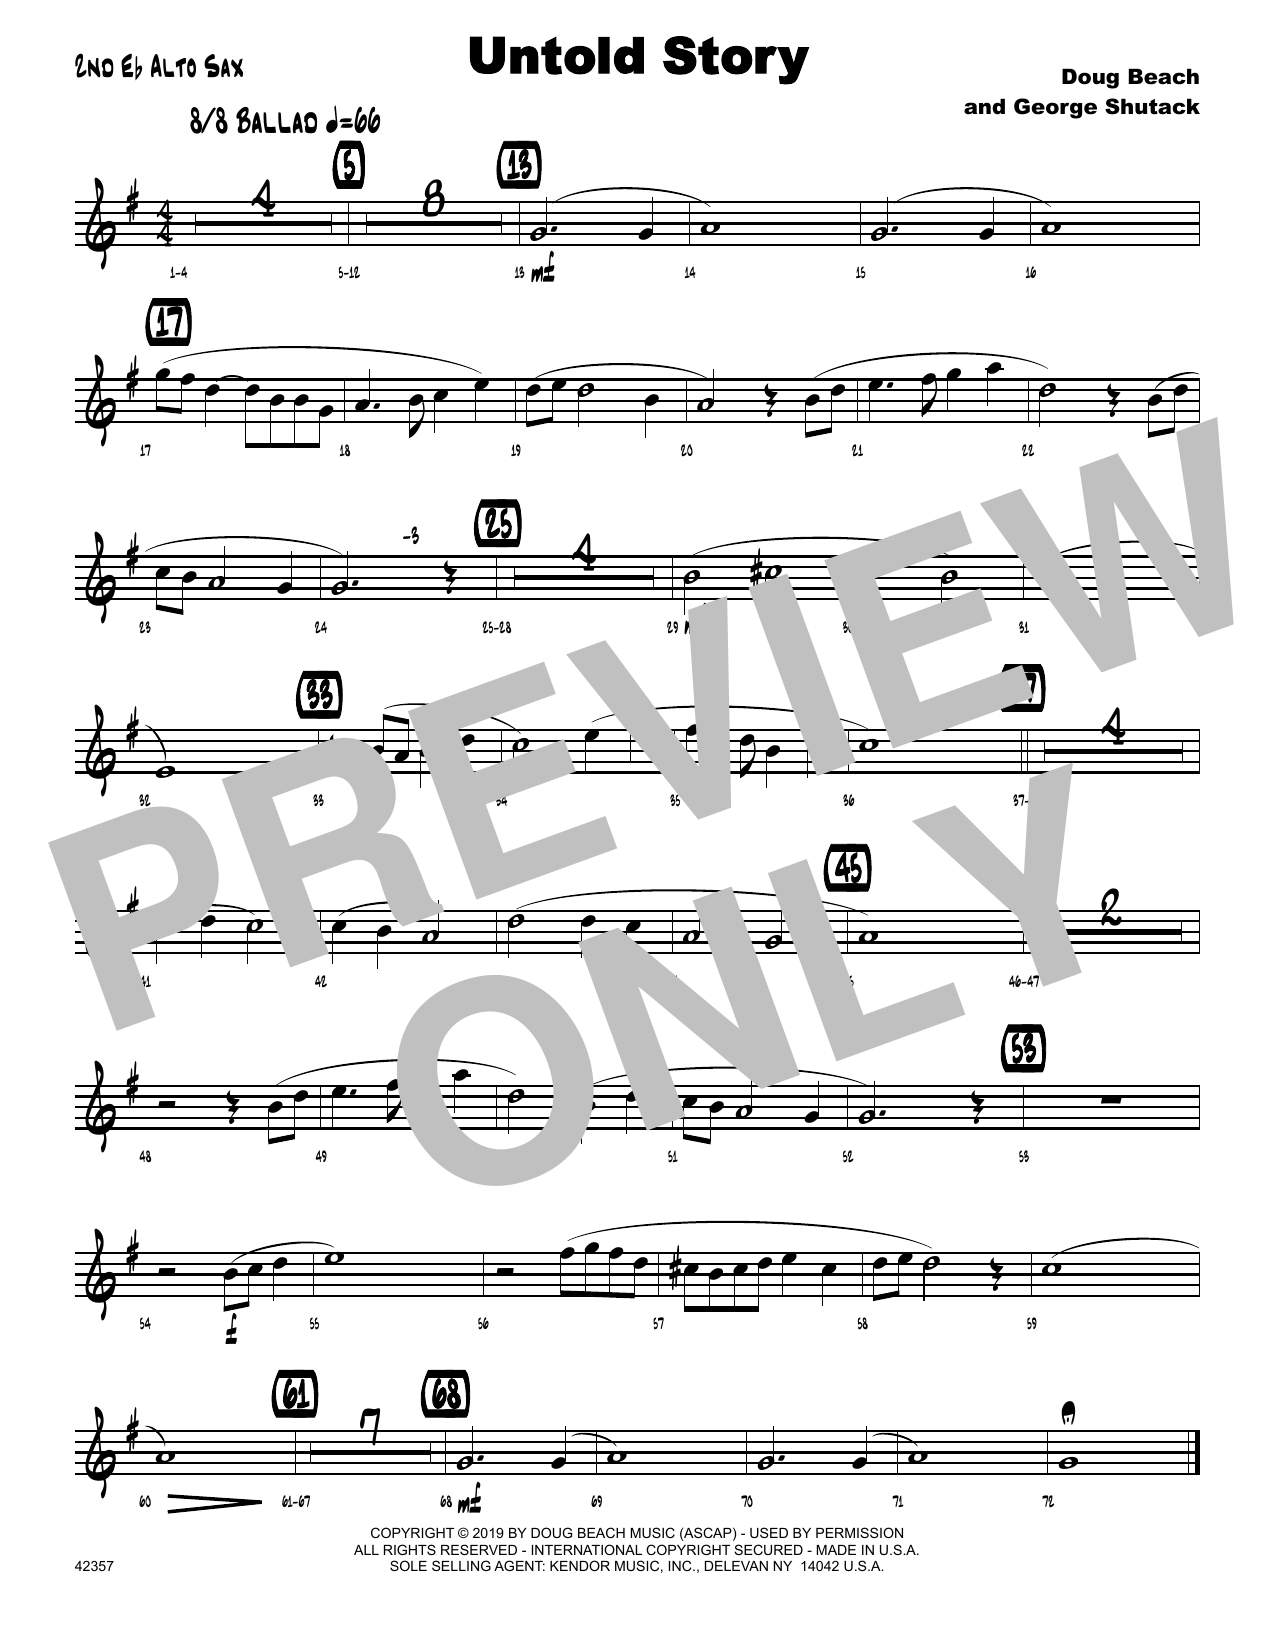 Doug Beach & George Shutack Untold Story - 2nd Eb Alto Saxophone sheet music notes and chords. Download Printable PDF.